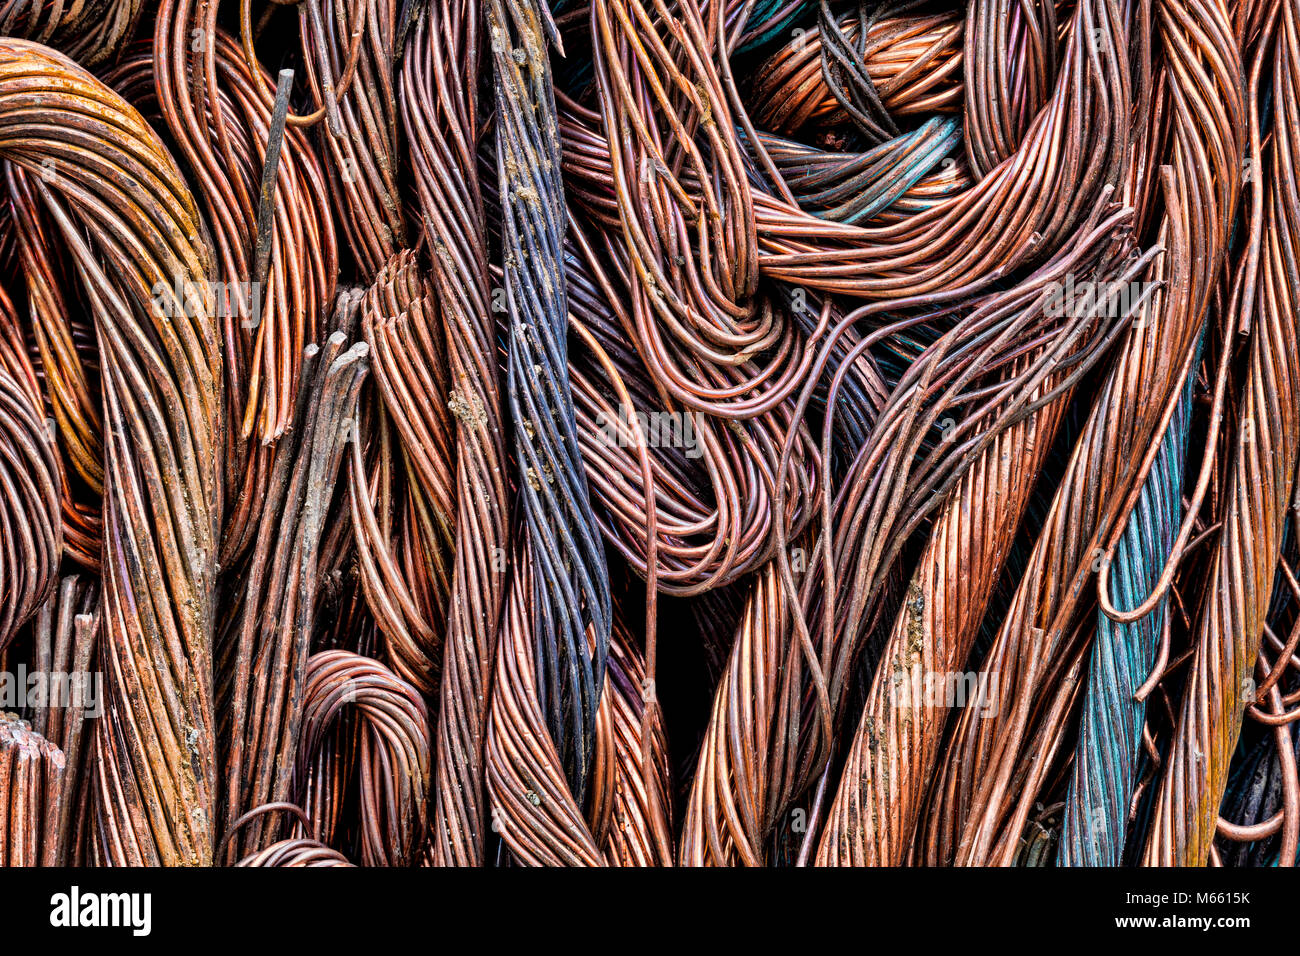 Scrap copper prepared for Recycle, Alaska, Chena Hot Springs. Photographed at 50.6 megapixels - Stock Image